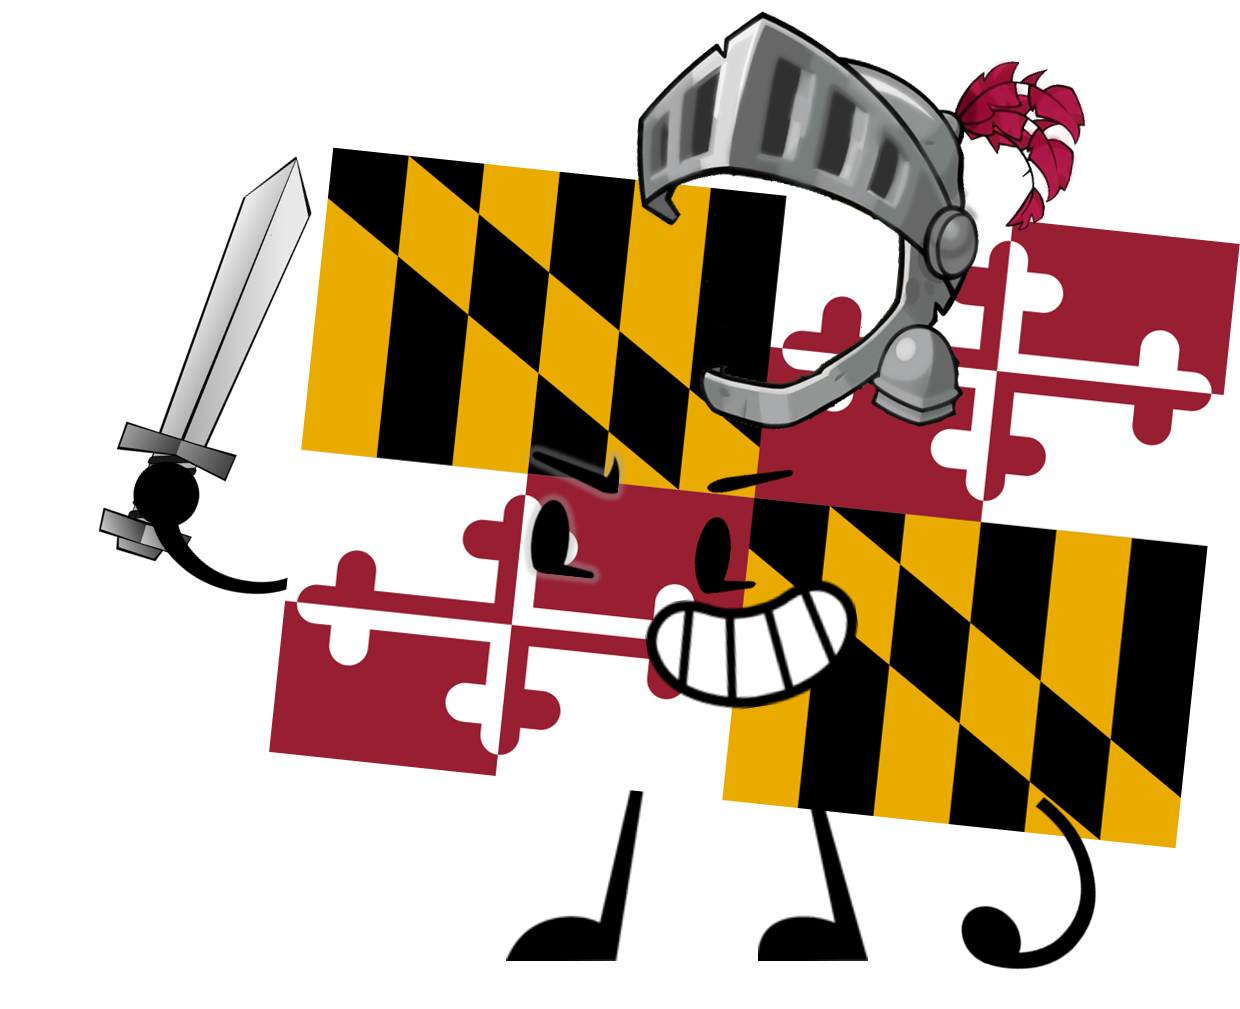 Maryland flag png. Image pose object shows